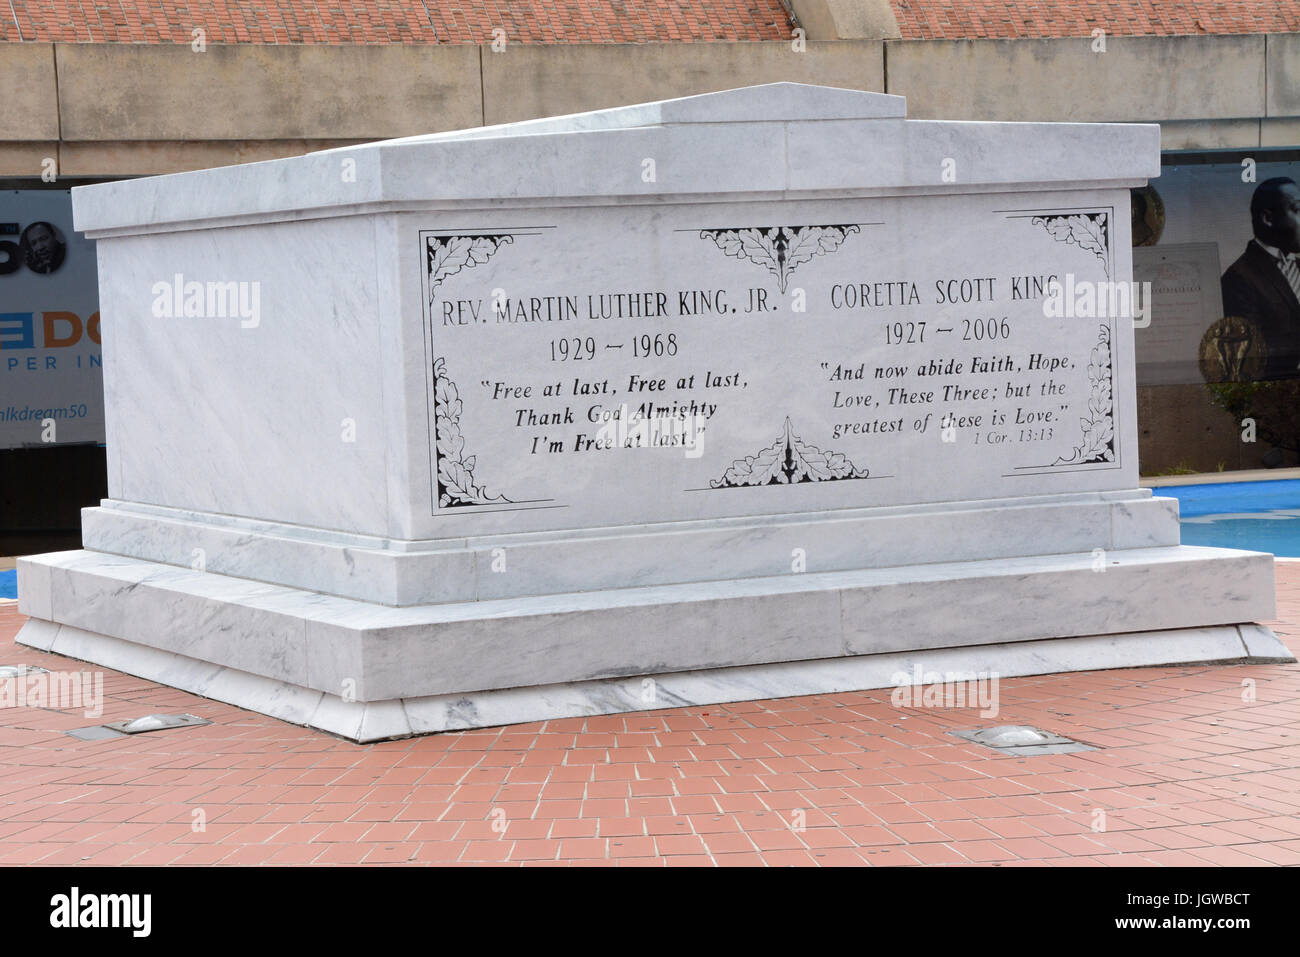 Tomb of Dr. Martin Luther King Jr. and Coretta Scott King Atlanta,GA - Stock Image